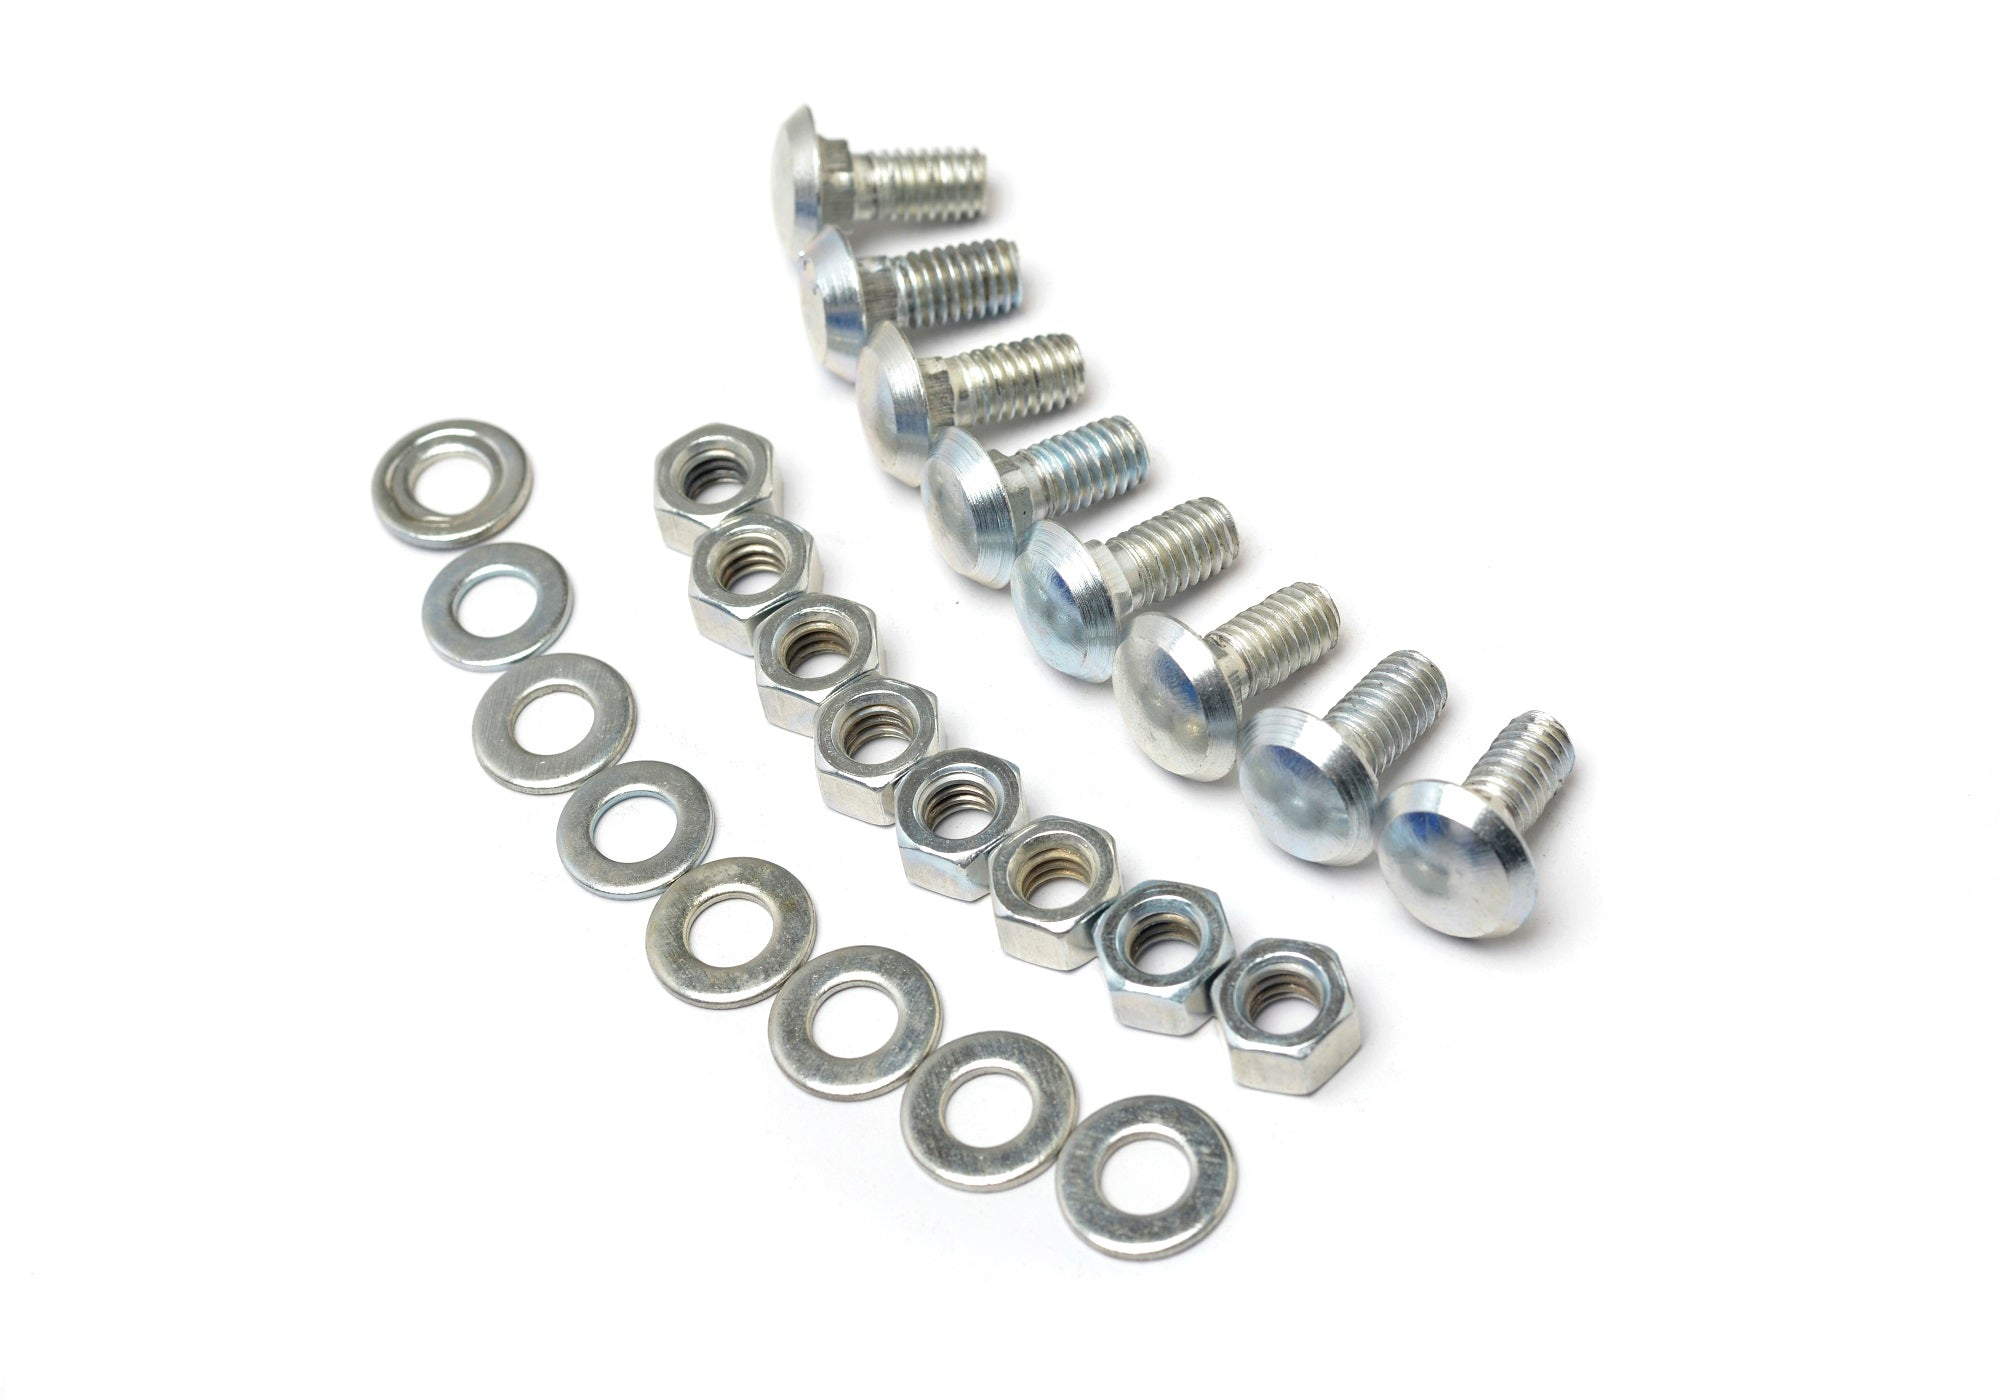 TMT CARRIAGE BOLTS KIT OF EIGHT